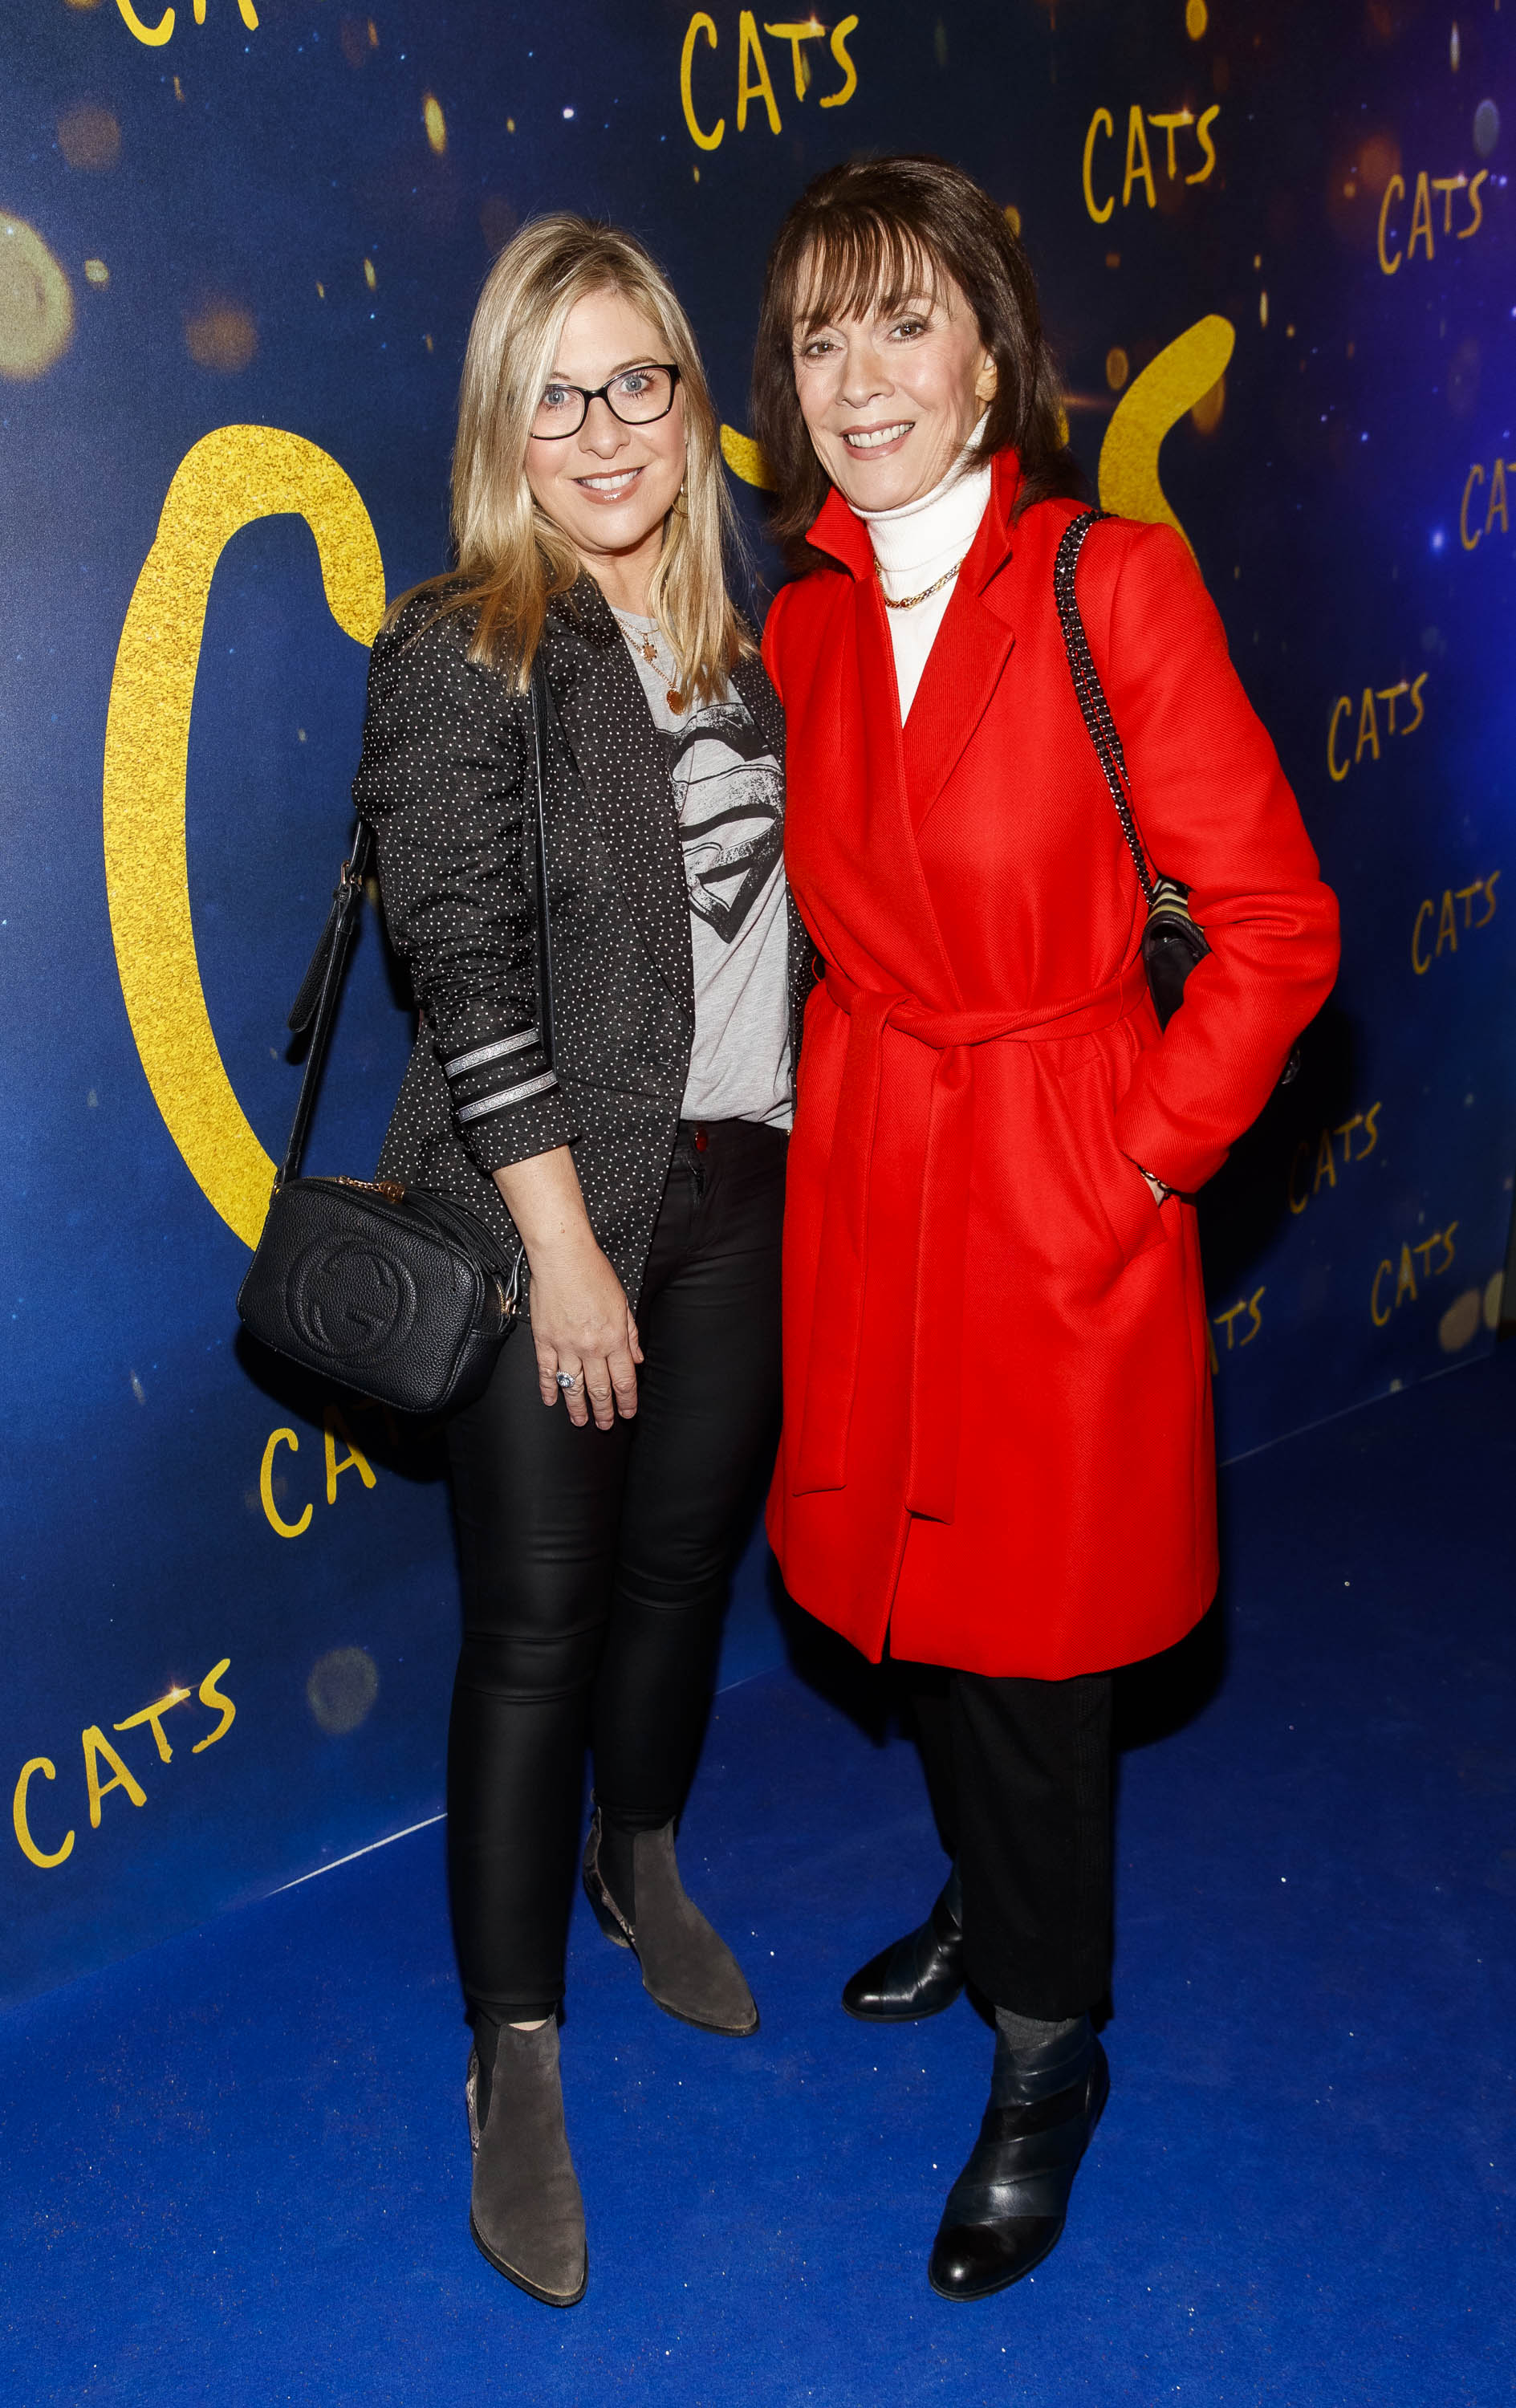 Laura Woods and Pauline Woods pictured at the Irish premiere screening of 'Cats' at The Stella Theatre, Rathmines. Picture: Andres Poveda